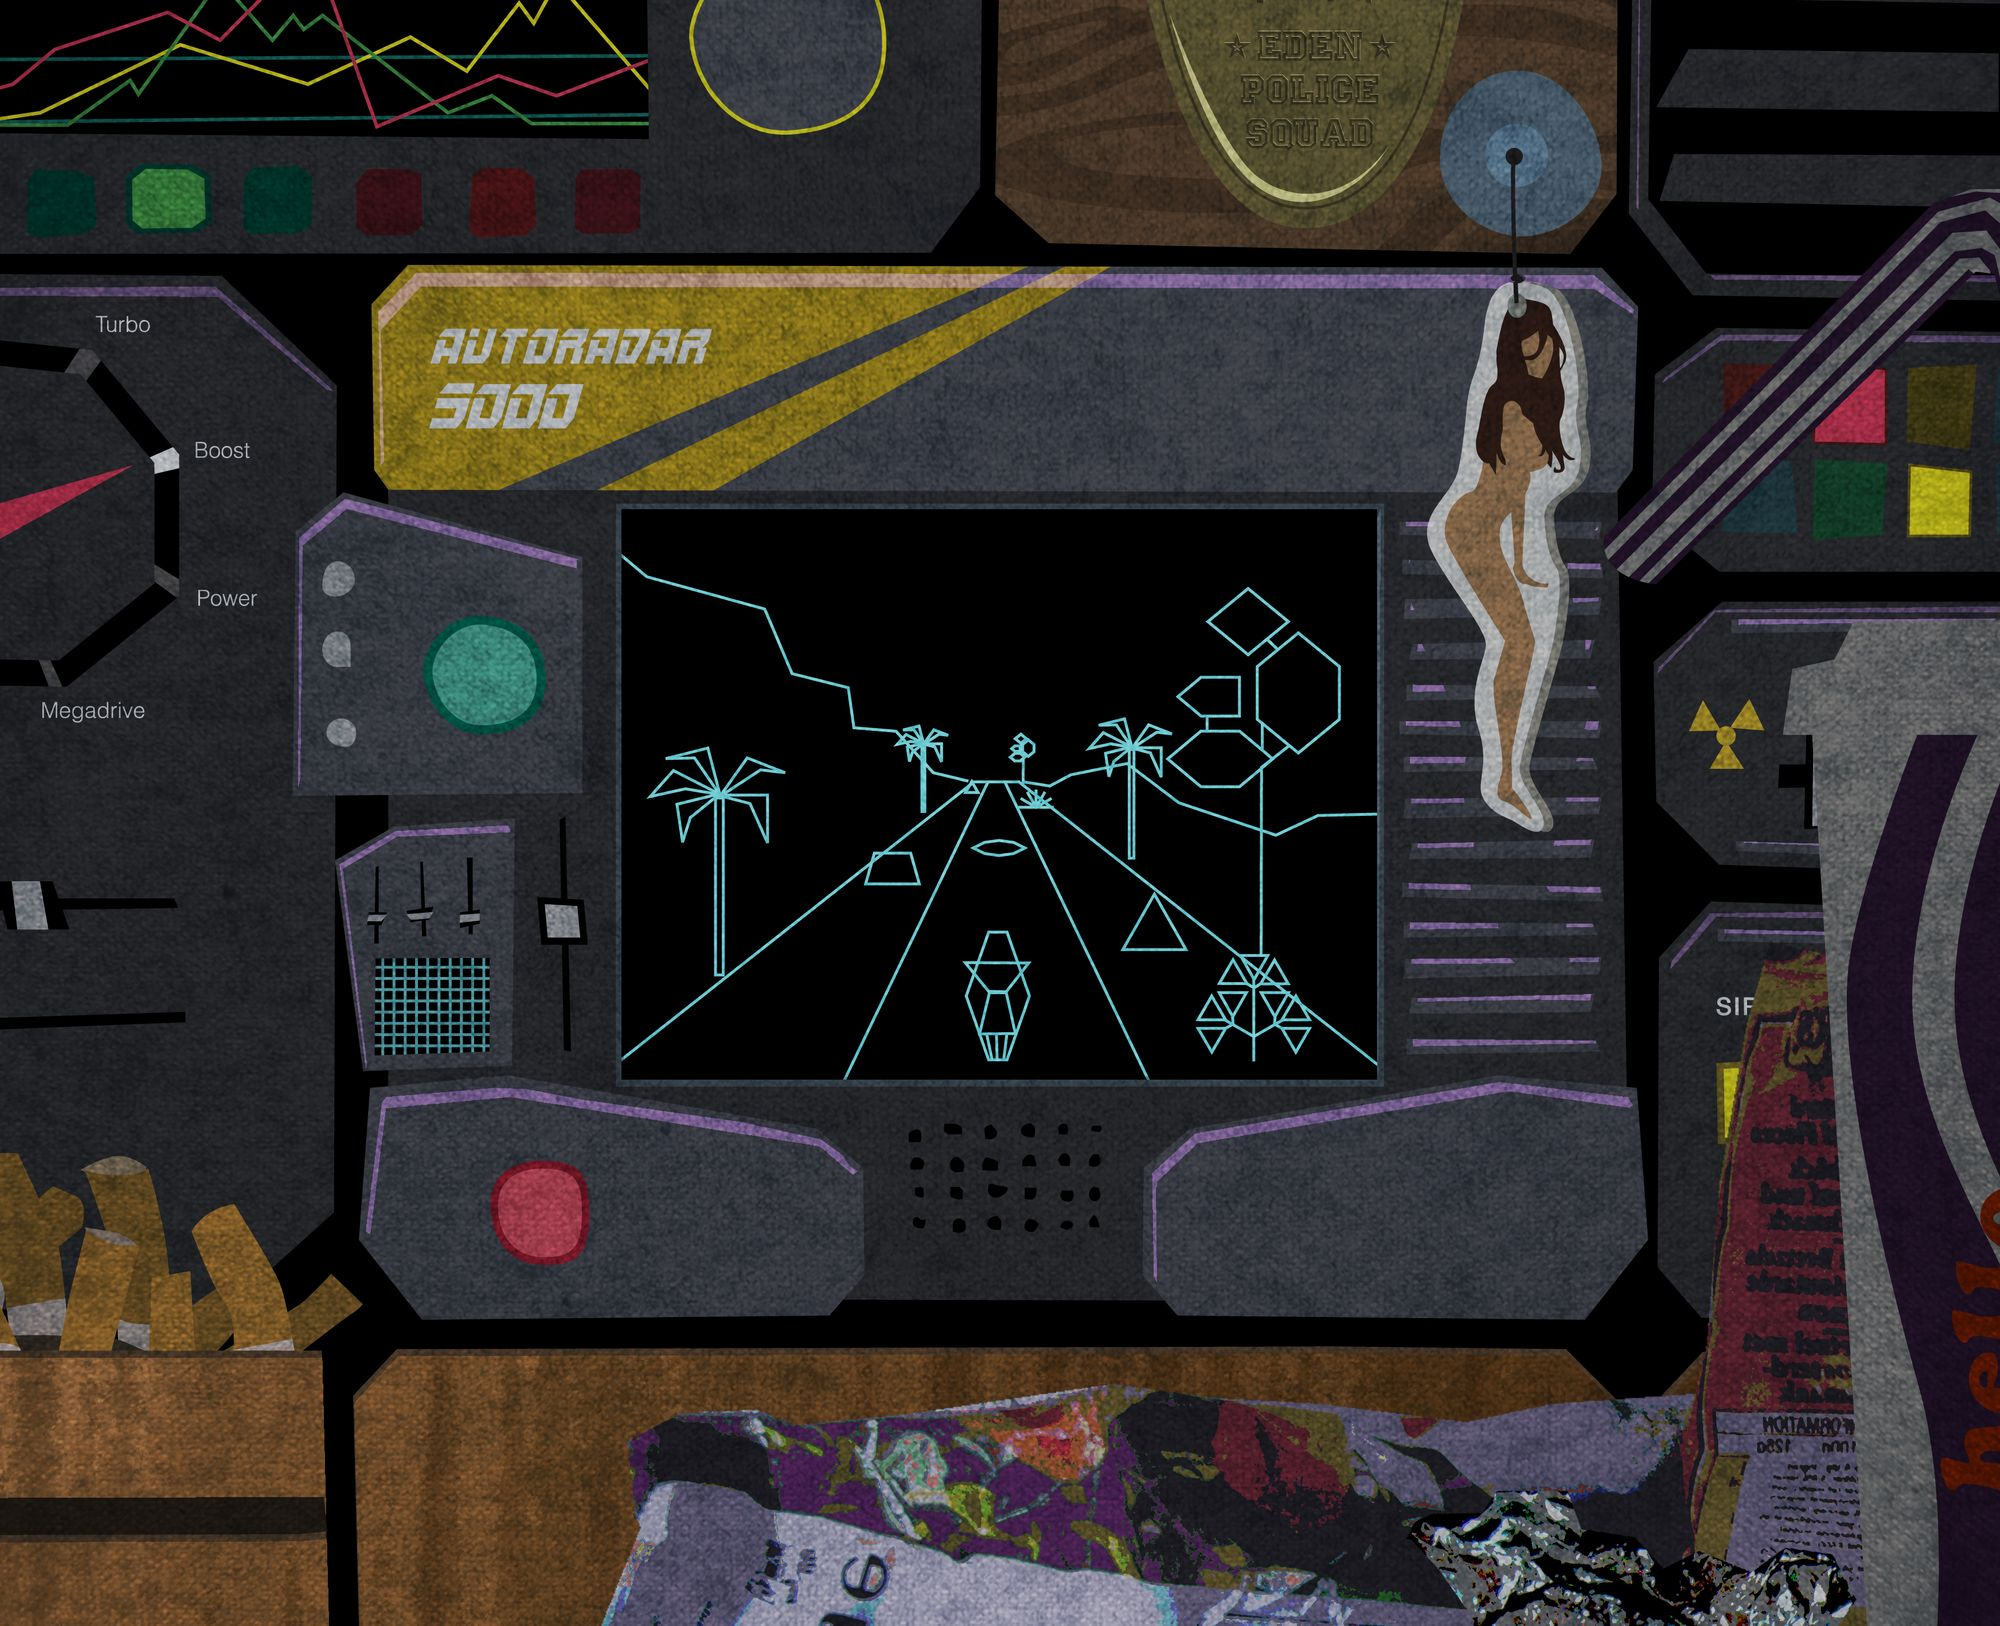 Image of a dashboard of a retro futuristic police car following the player.